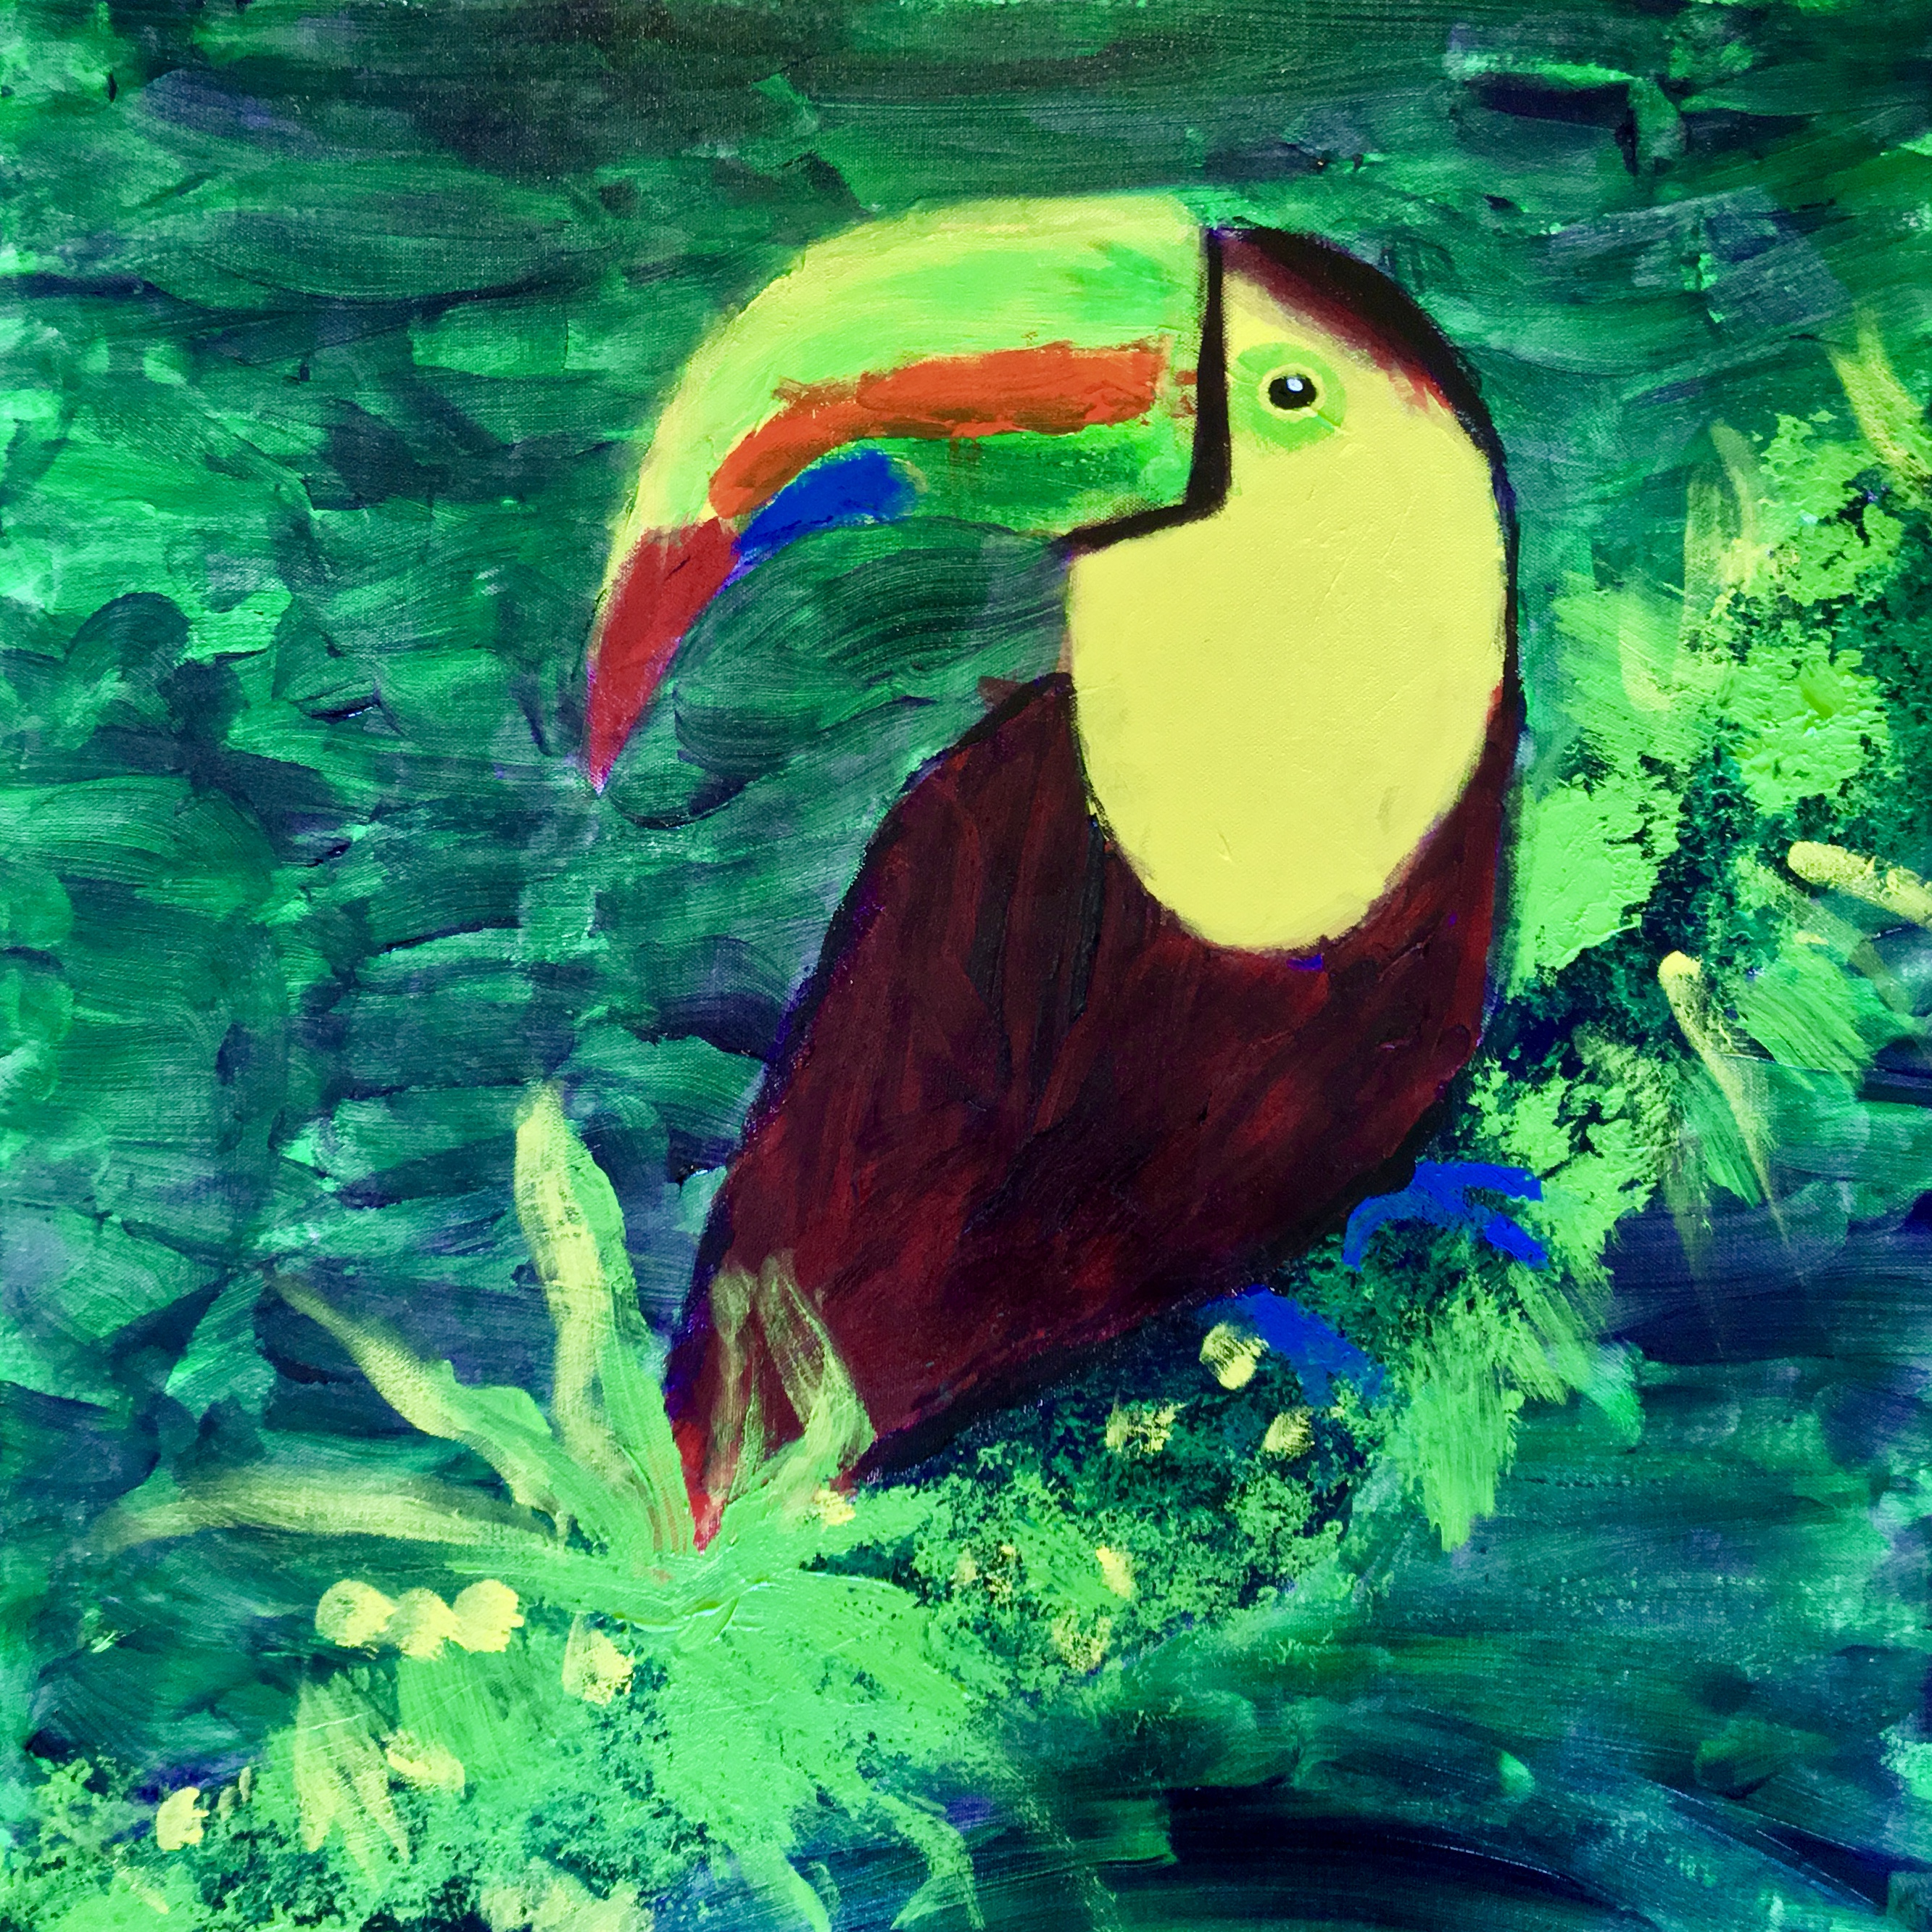 Toucan - Original For Sale - Prints Available